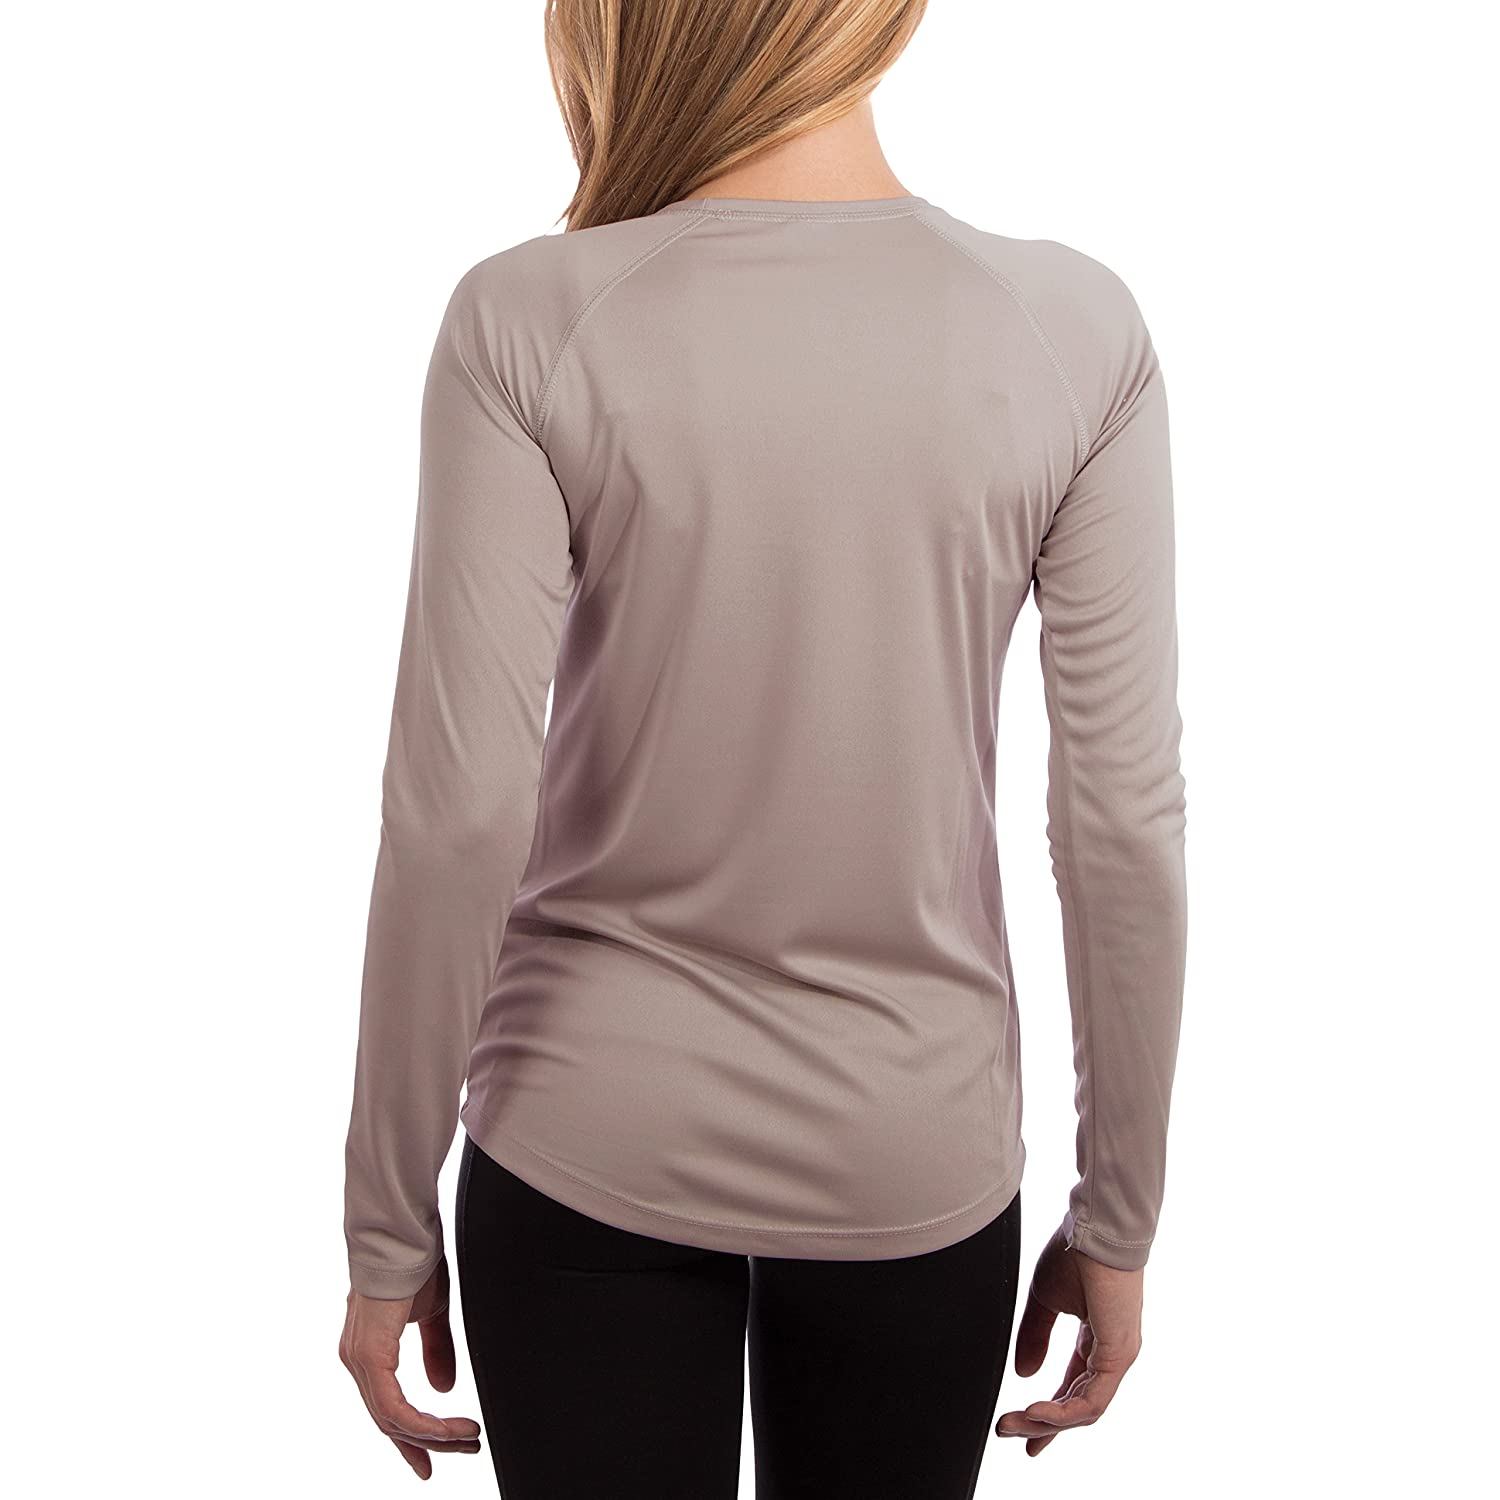 d798d261 Vapor Apparel Women's UPF 50+ UV Sun Protection Performance Long Sleeve T- Shirt at Amazon Women's Clothing store: Athletic Shirts